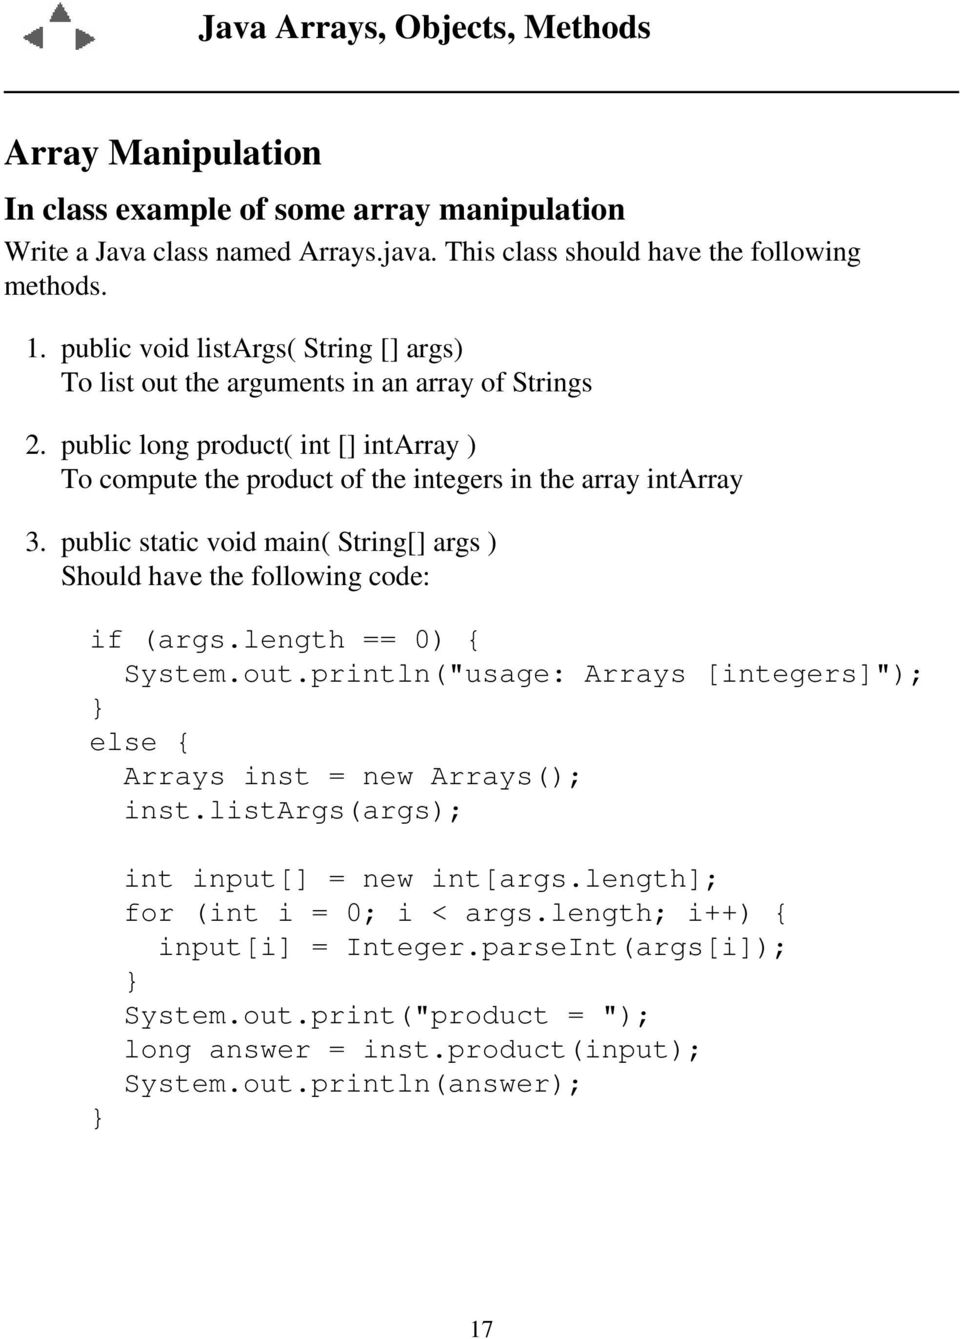 public long product( int [] intarray ) To compute the product of the integers in the array intarray 3. public static void main( String[] args ) Should have the following code: if (args.